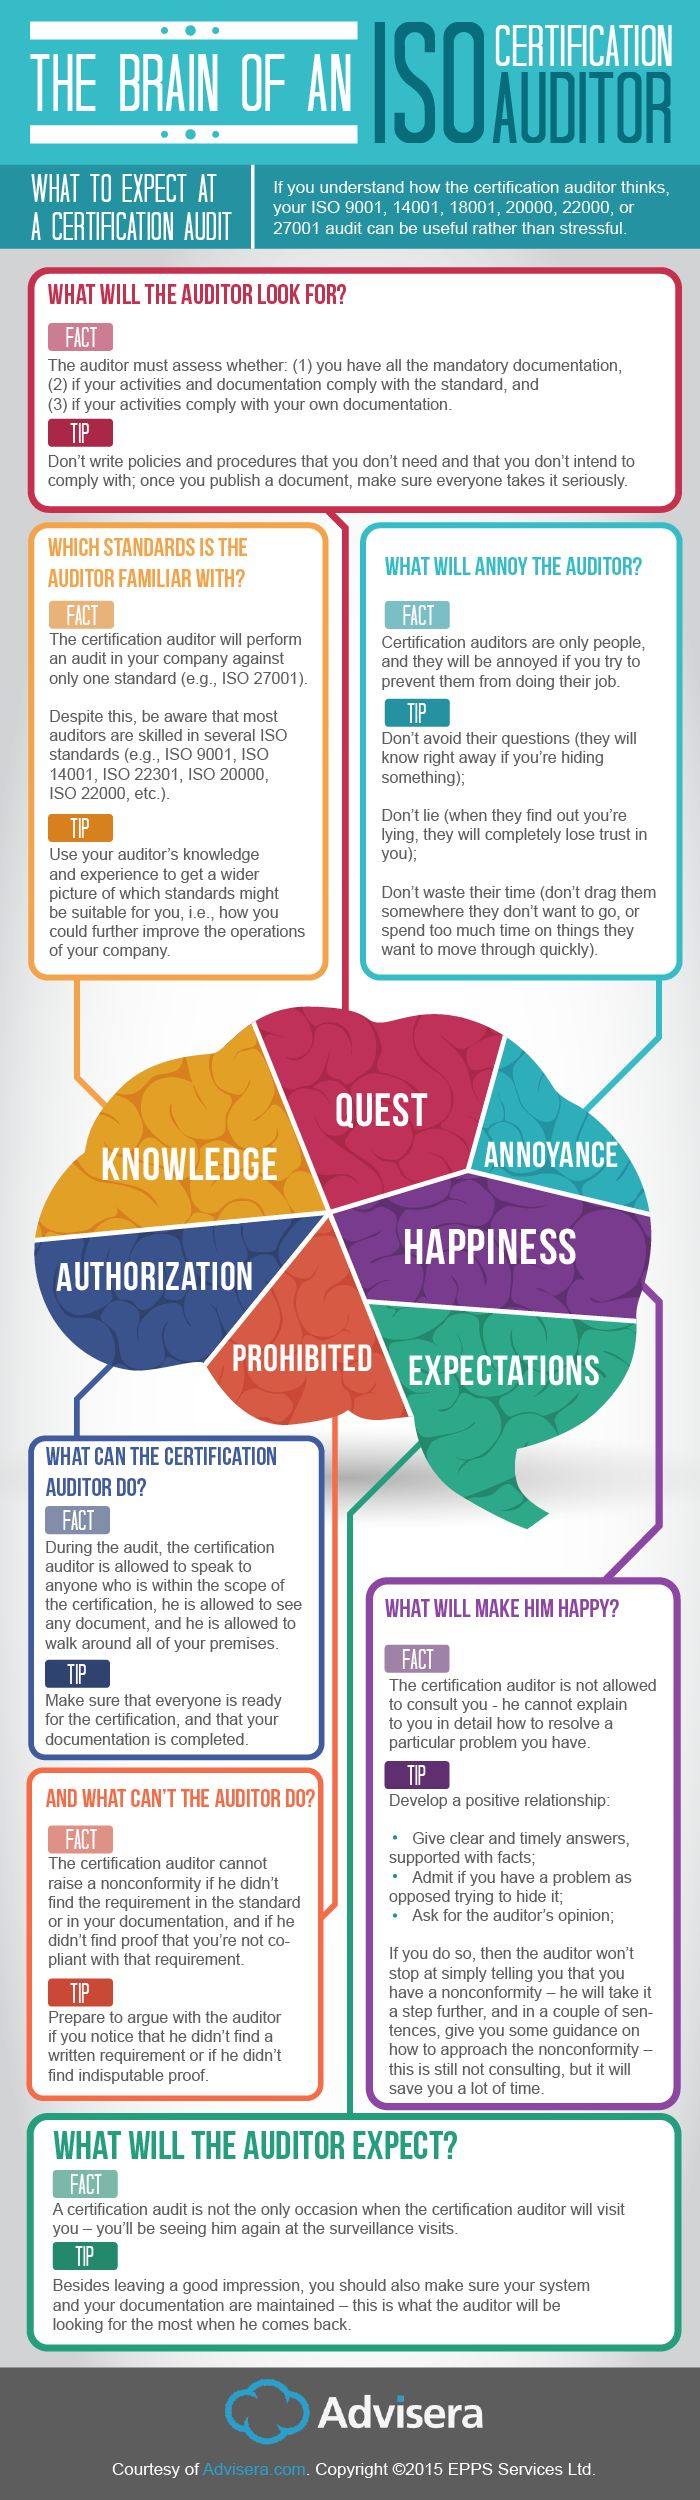 The Brain of an ISO Auditor – What to Expect at a Certification Audit #infographic #Business